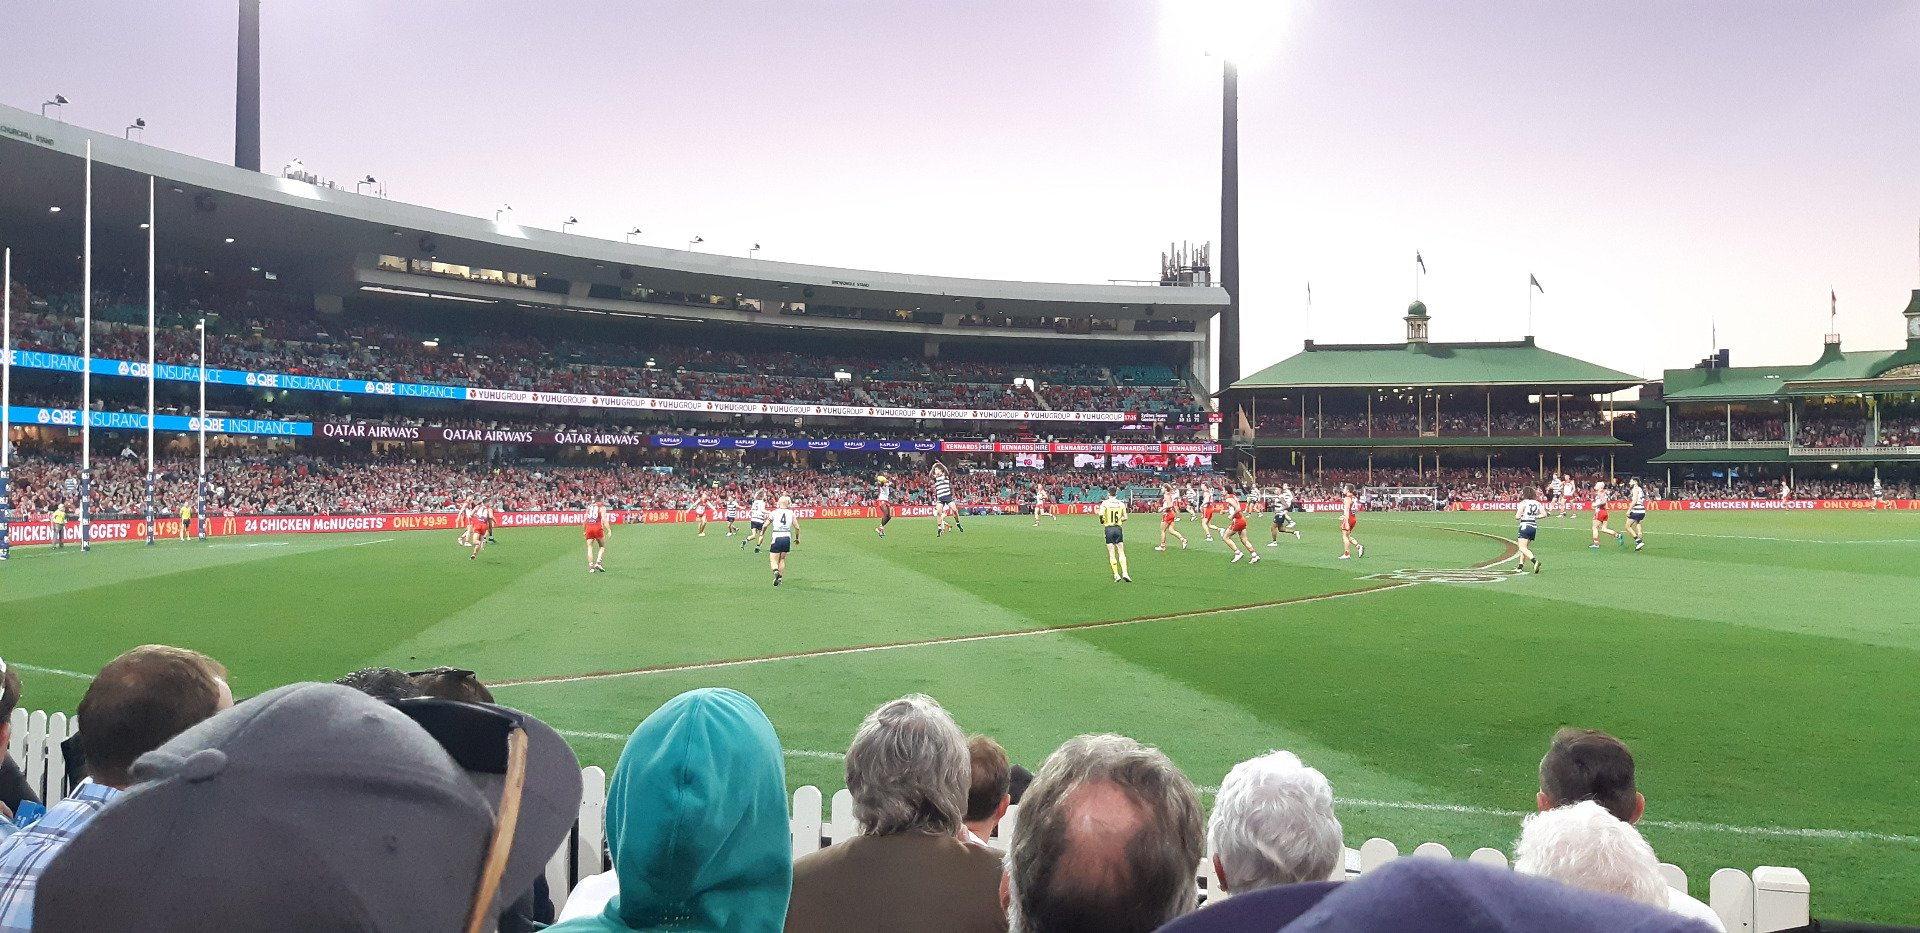 Sydney Cricket Ground Section 12 Row E Seat 1